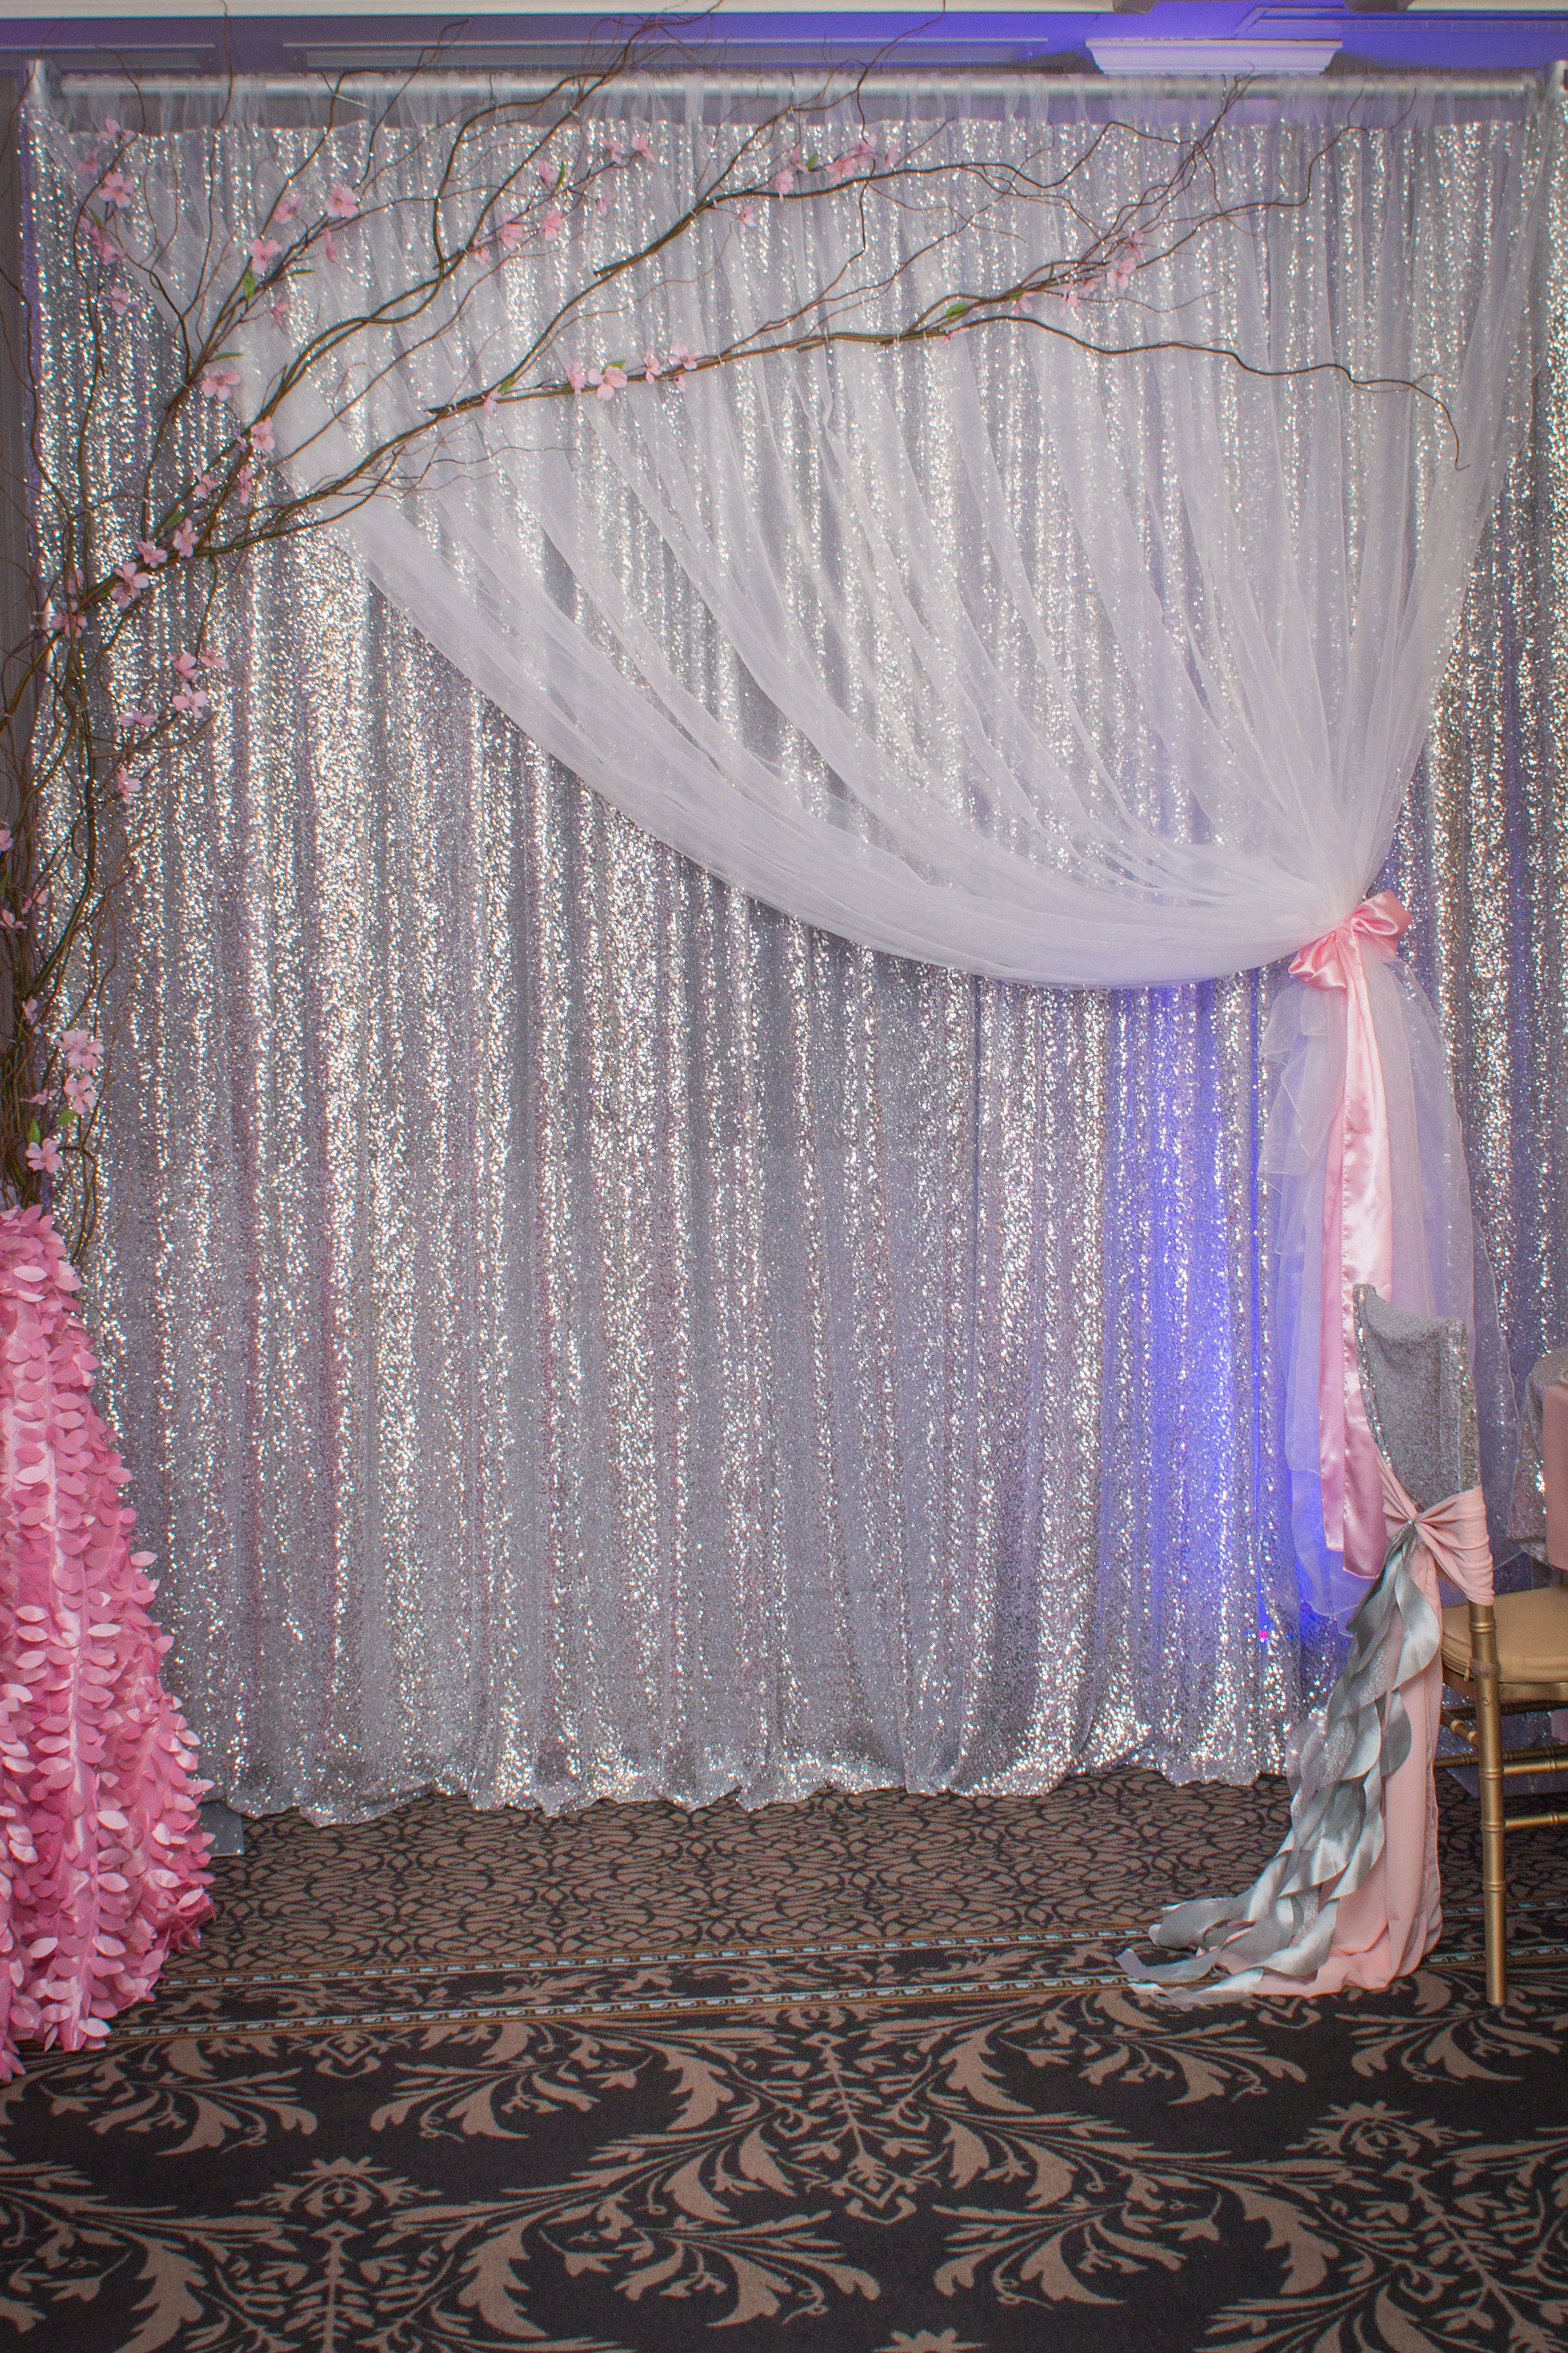 True elegance manchester bedford nh wedding decor services nh ma - Www curtain design picture ...